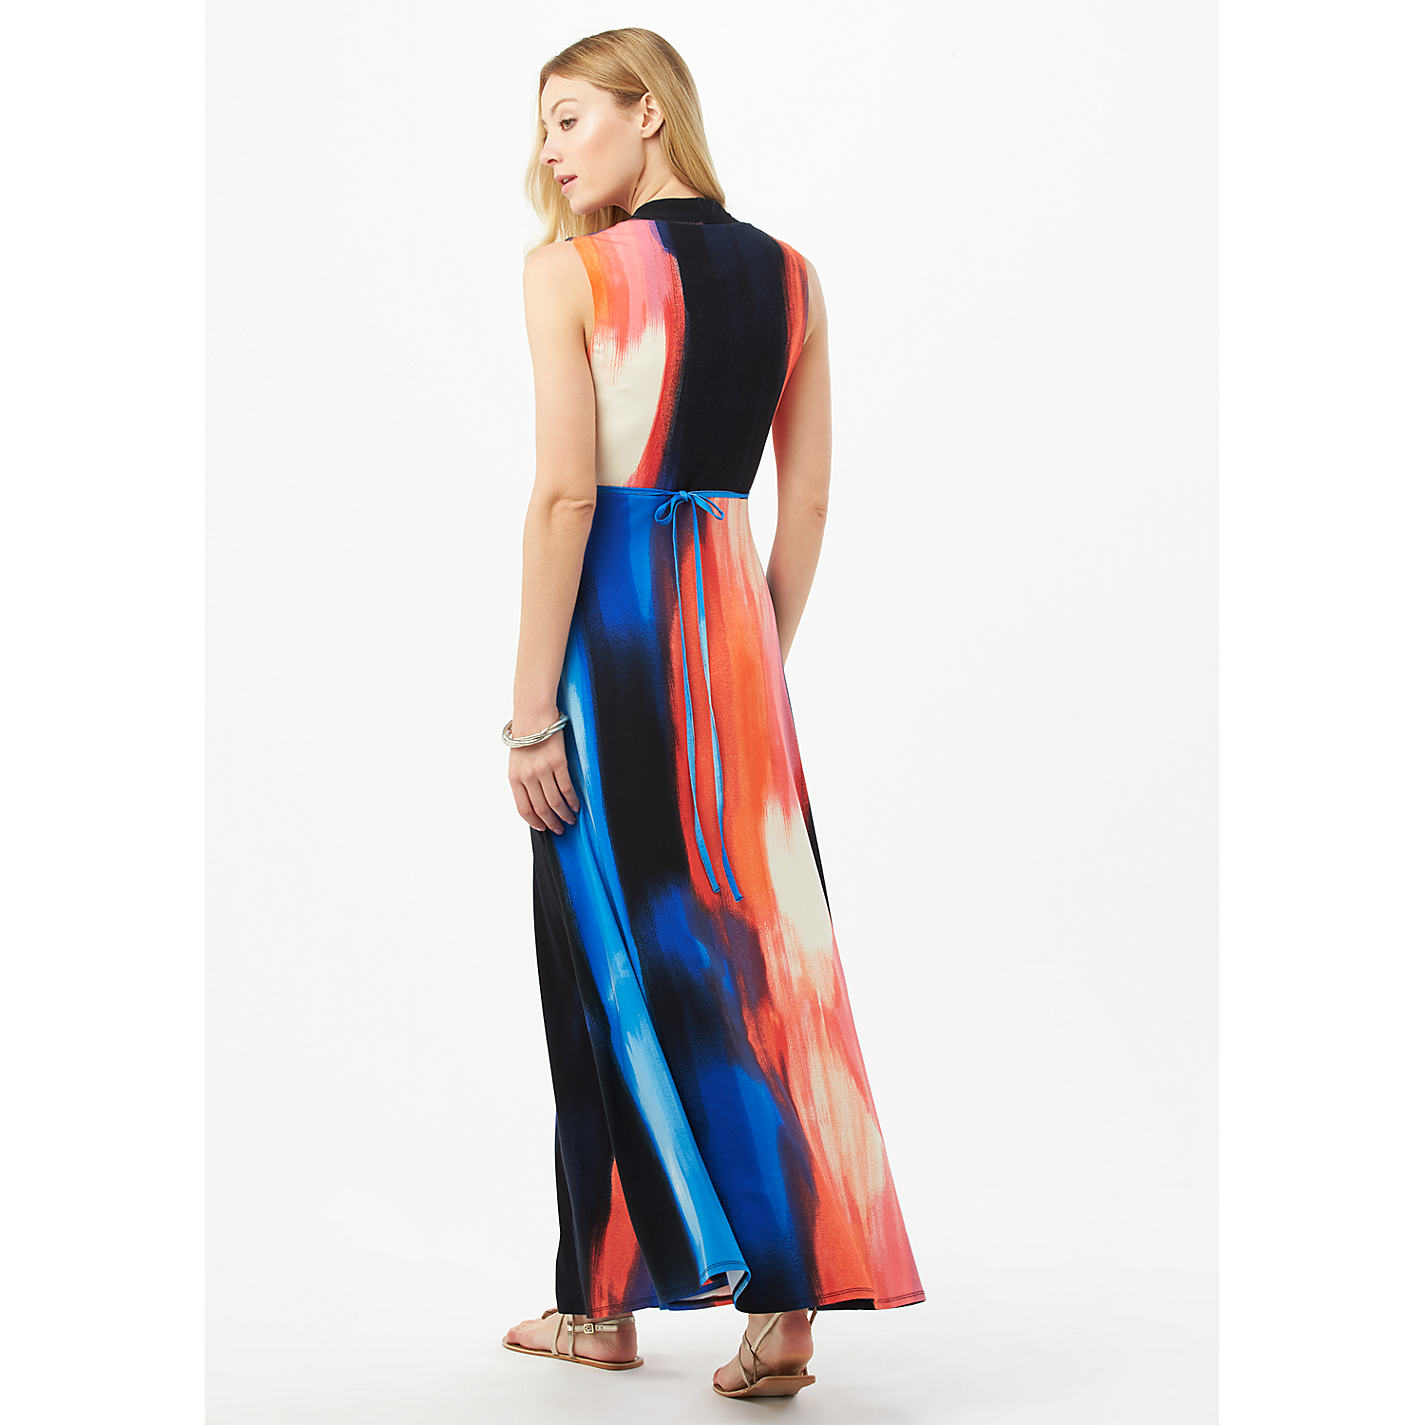 Phase 8 maxi dresses in tall